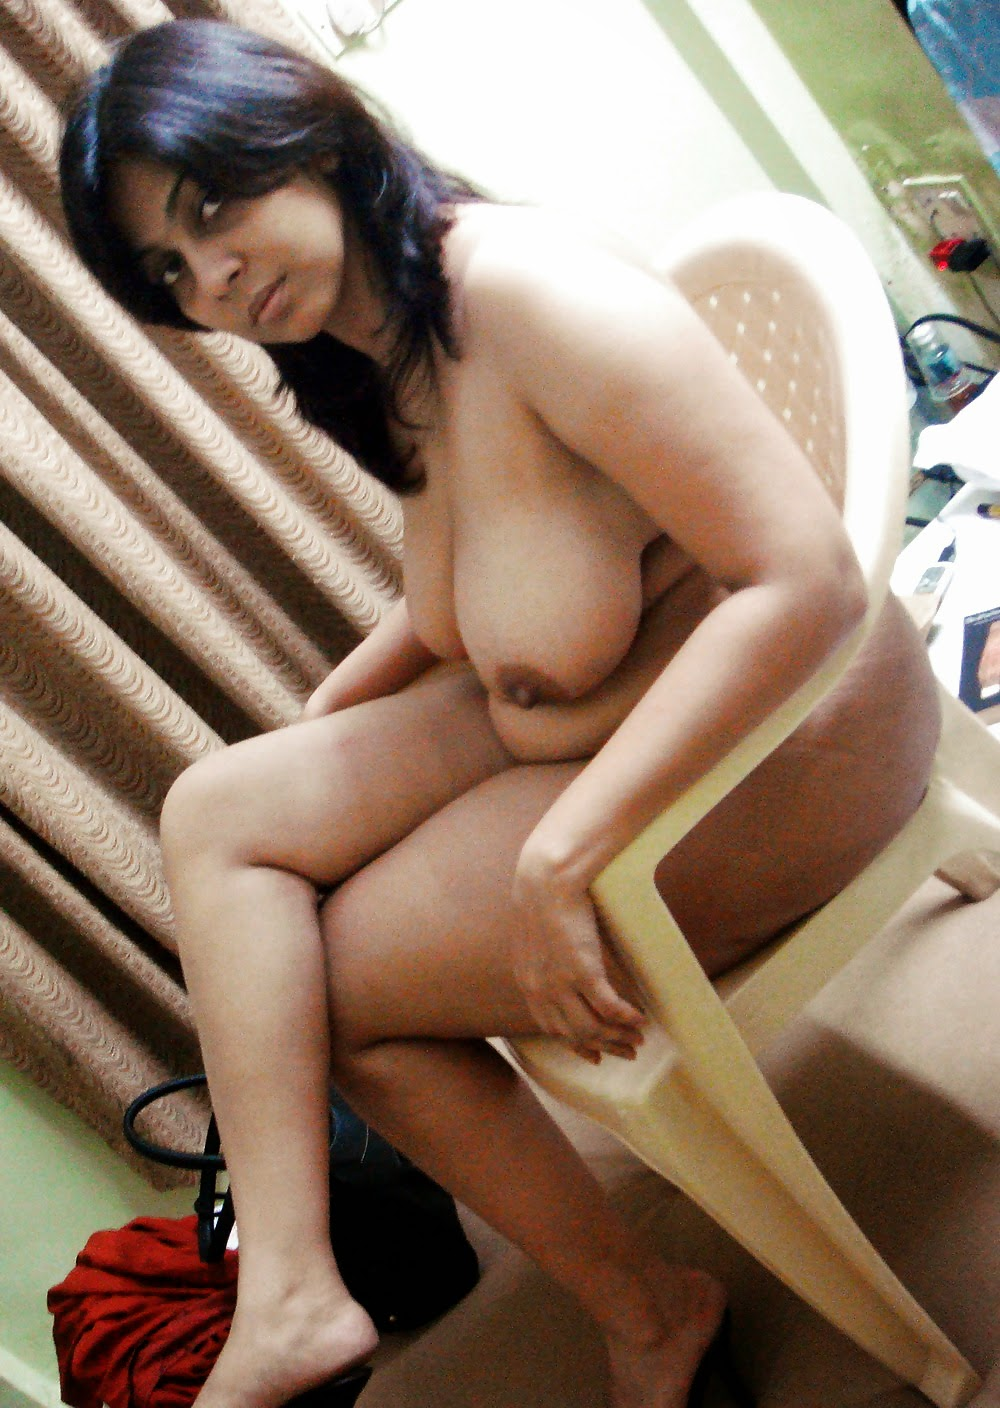 Japan naked aunty photo just